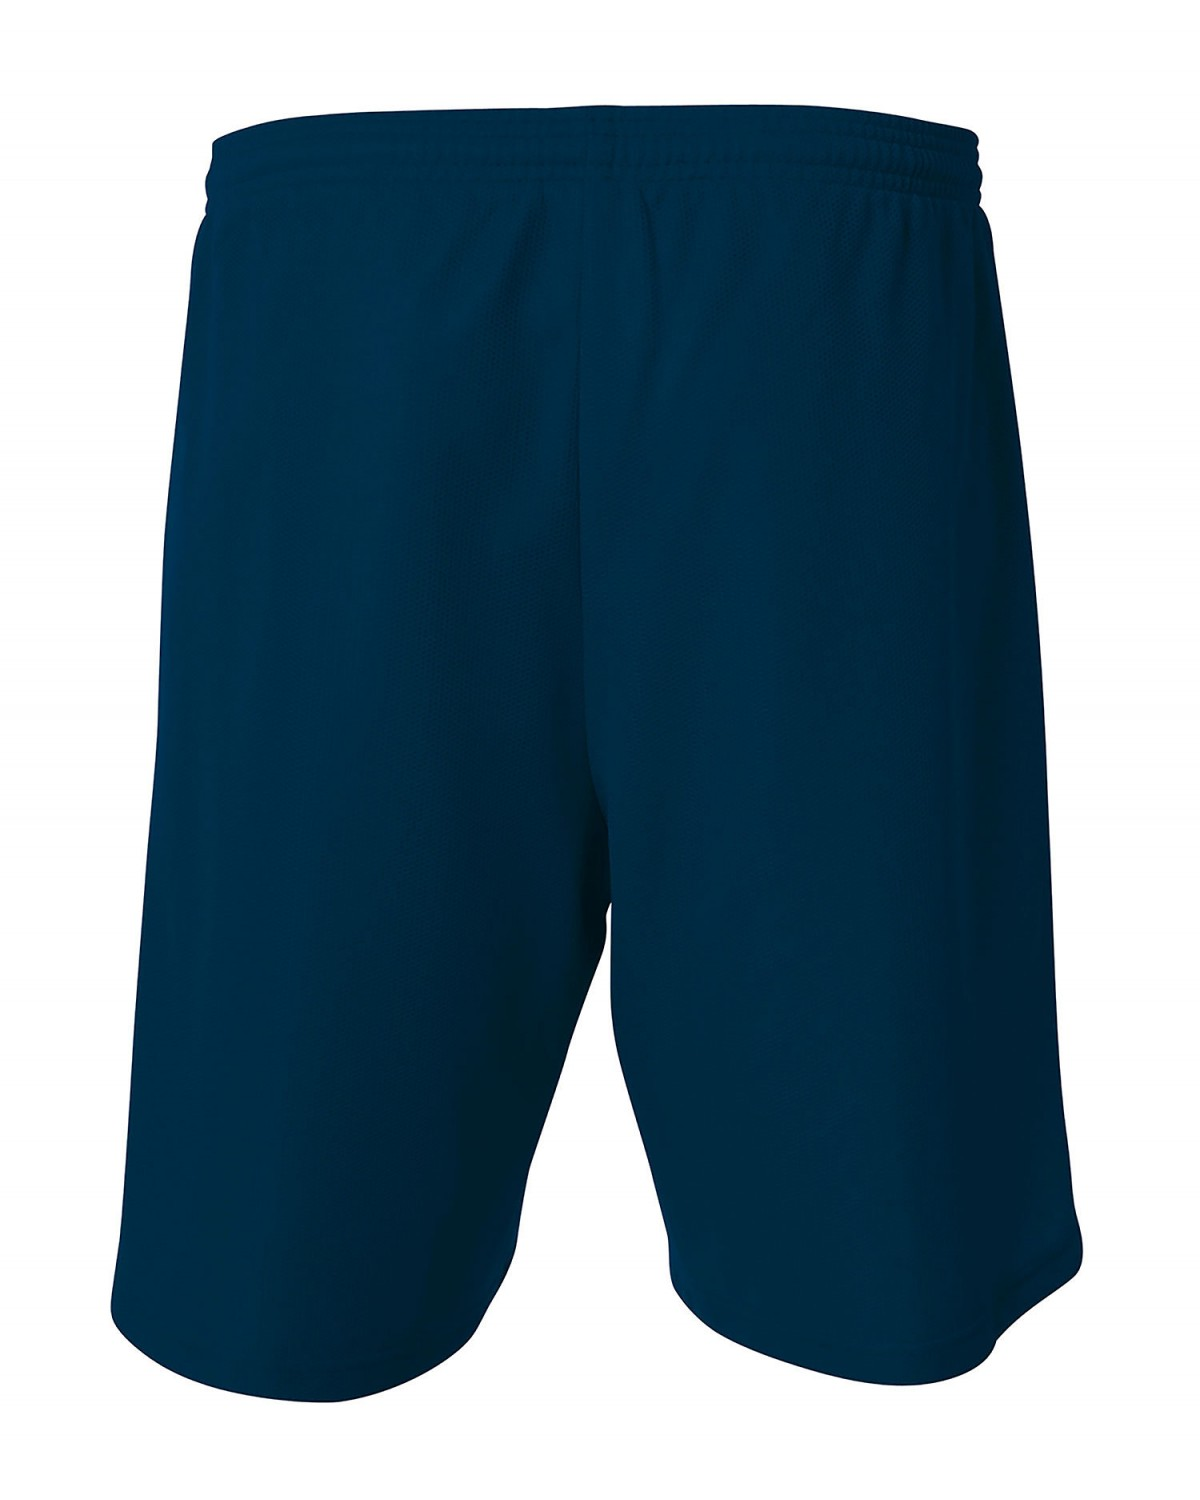 AATR401 American Apparel ATHLETIC BLUE